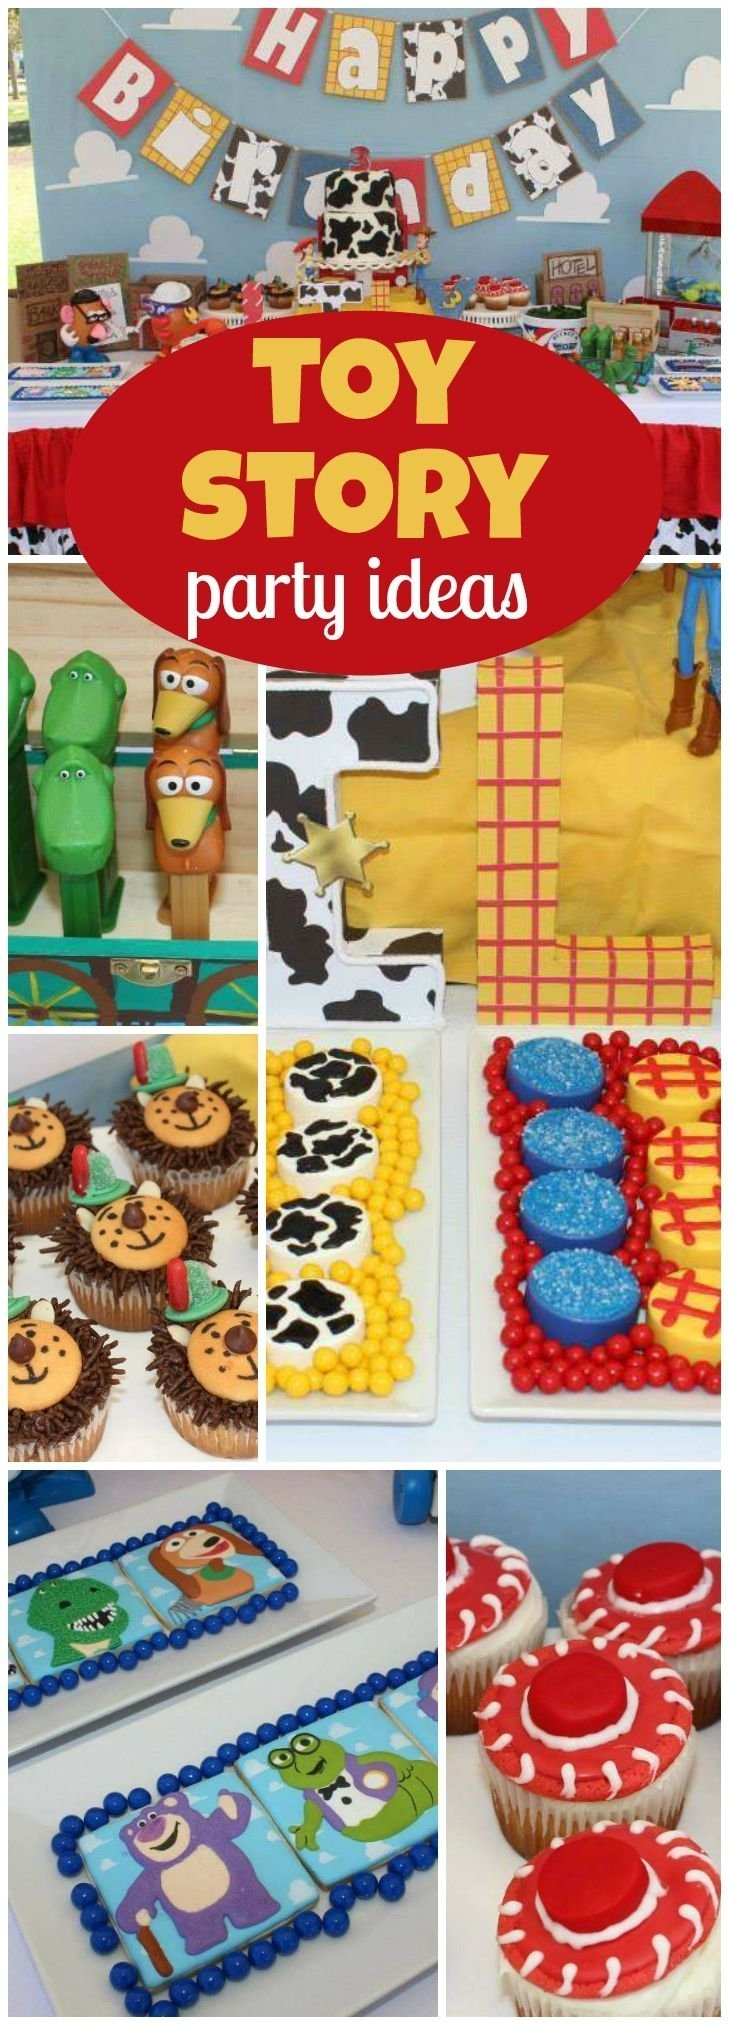 207 best toy story party ideas images on pinterest | toy story party